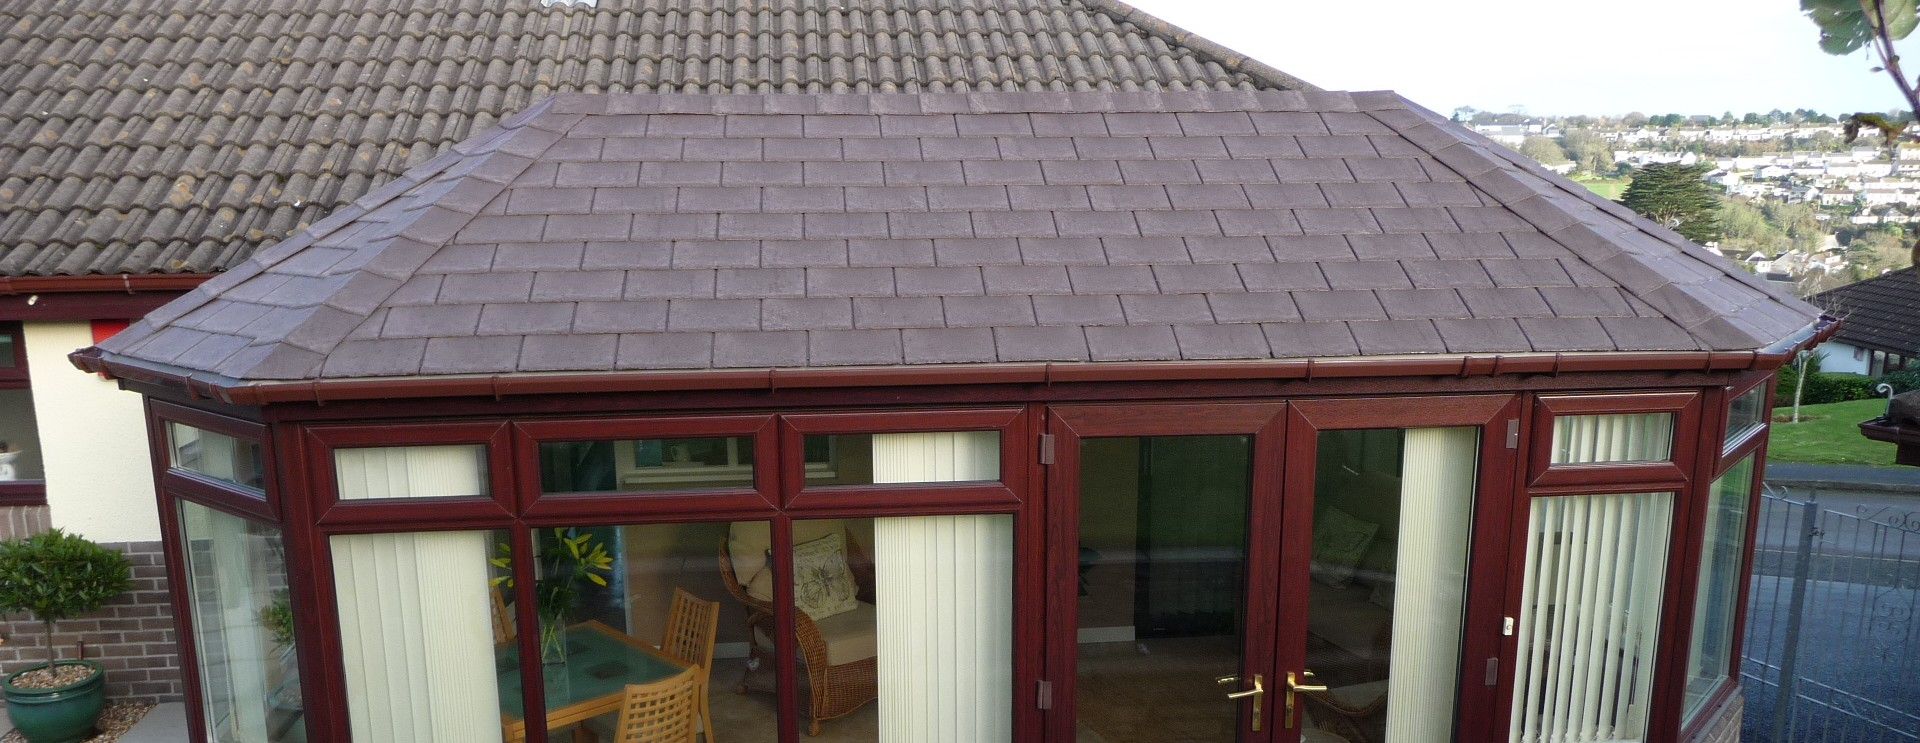 Header Image - Professional Conservatory Roof Conversions